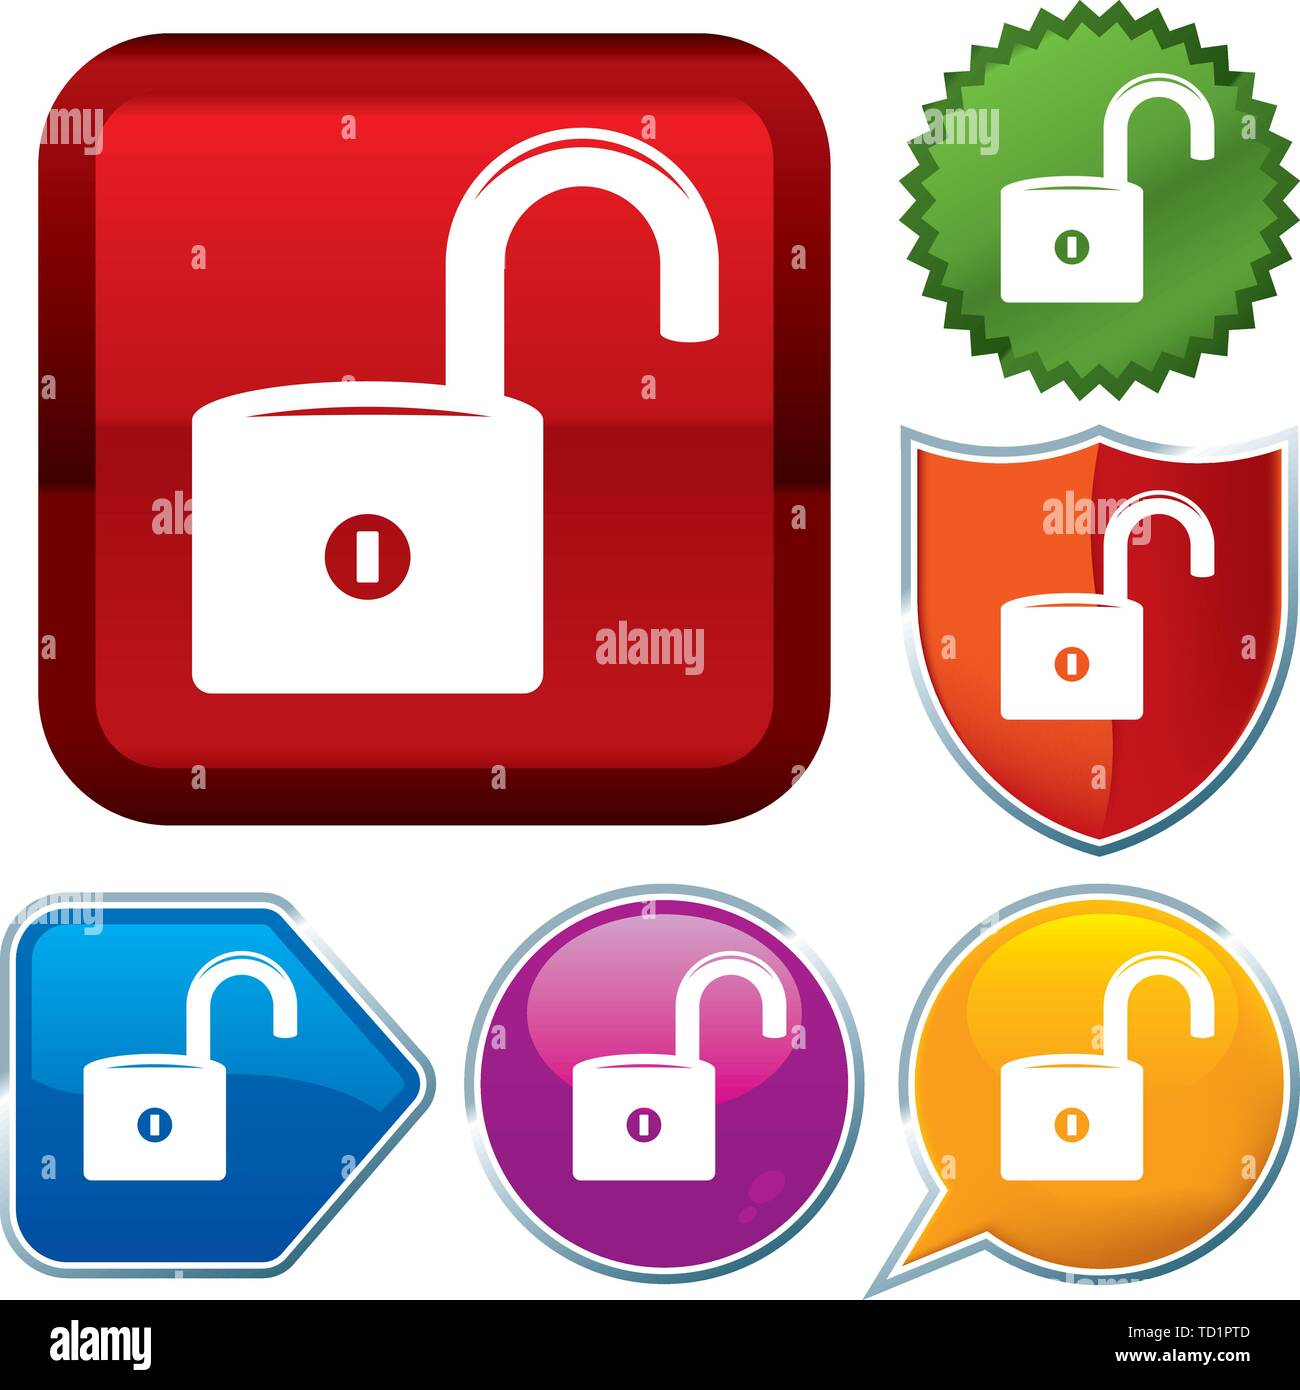 Vector illustration. Set shiny icon series on buttons. Unprotected. - Stock Image